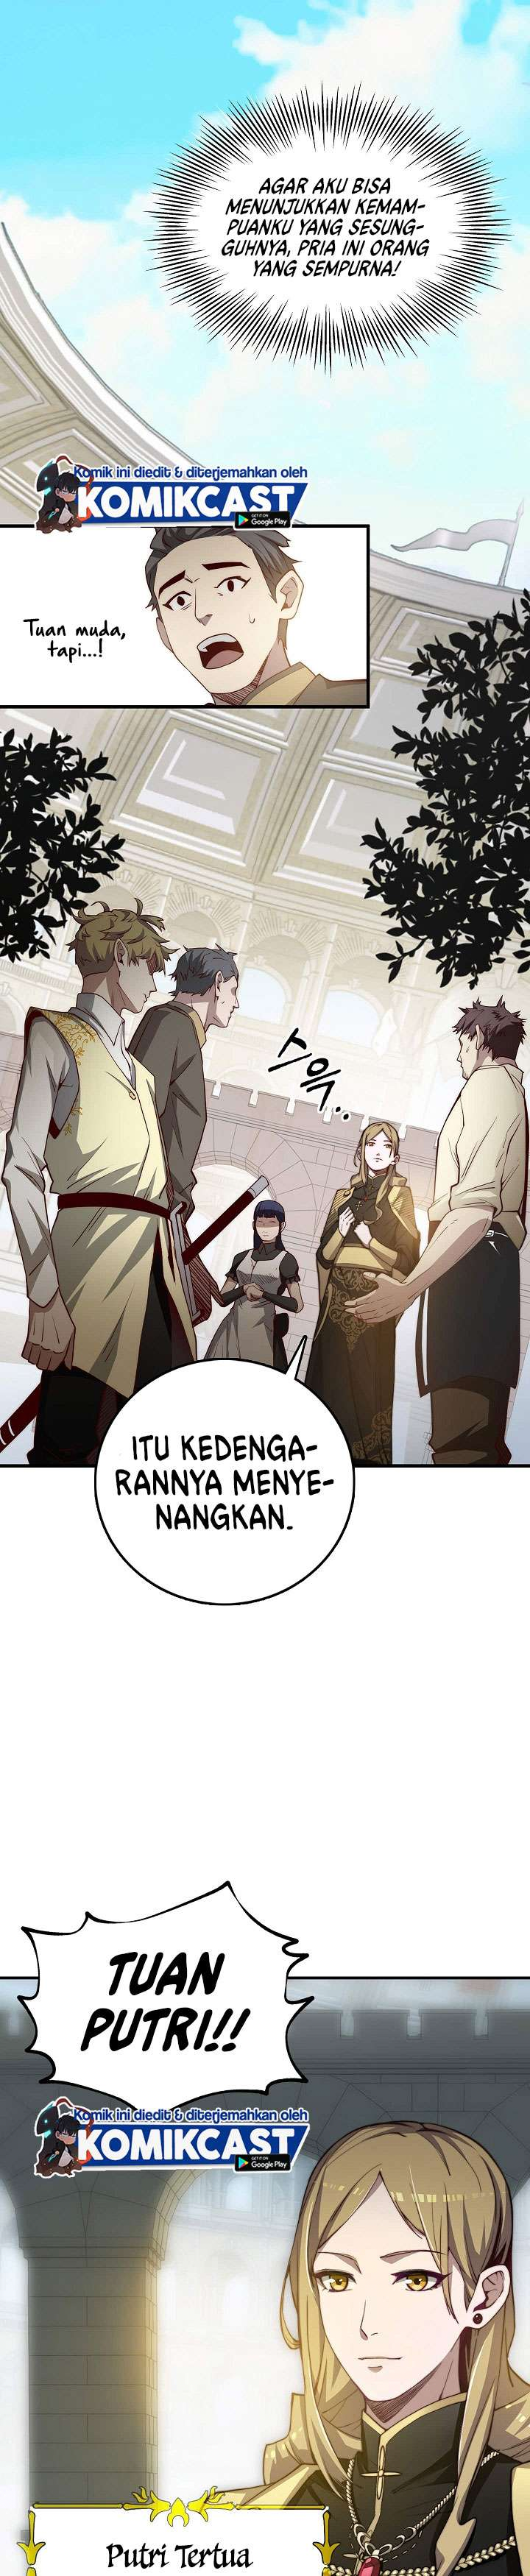 The Lord's Coins Aren't Decreasing?! Chapter 03 Bahasa Indonesia page 45